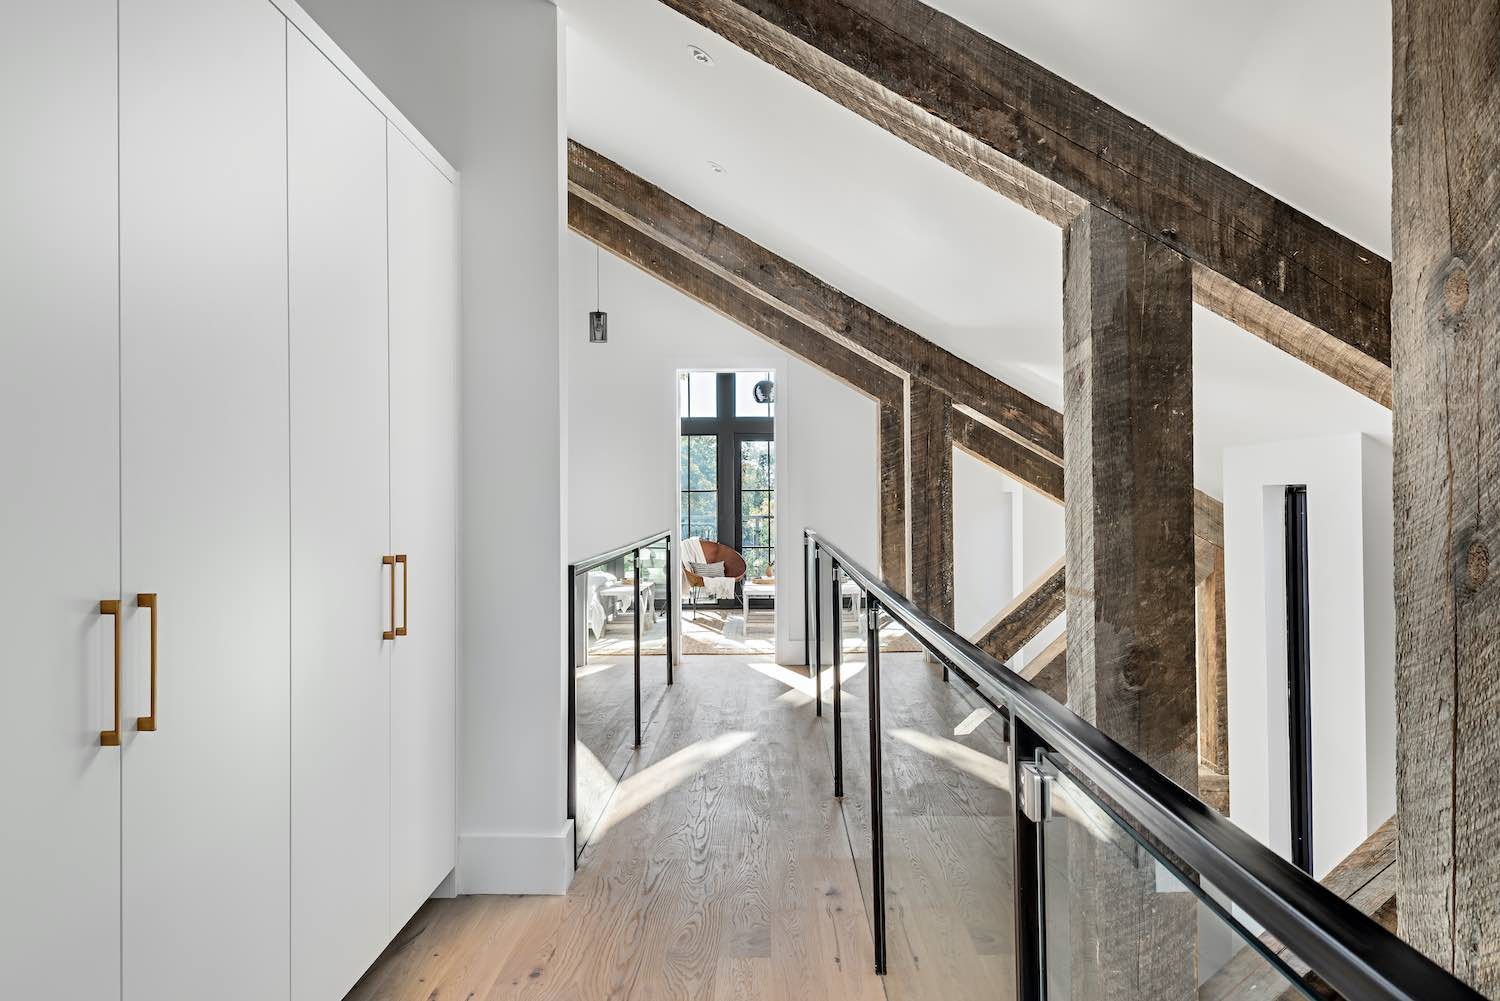 triangular ceiling with wooden beams